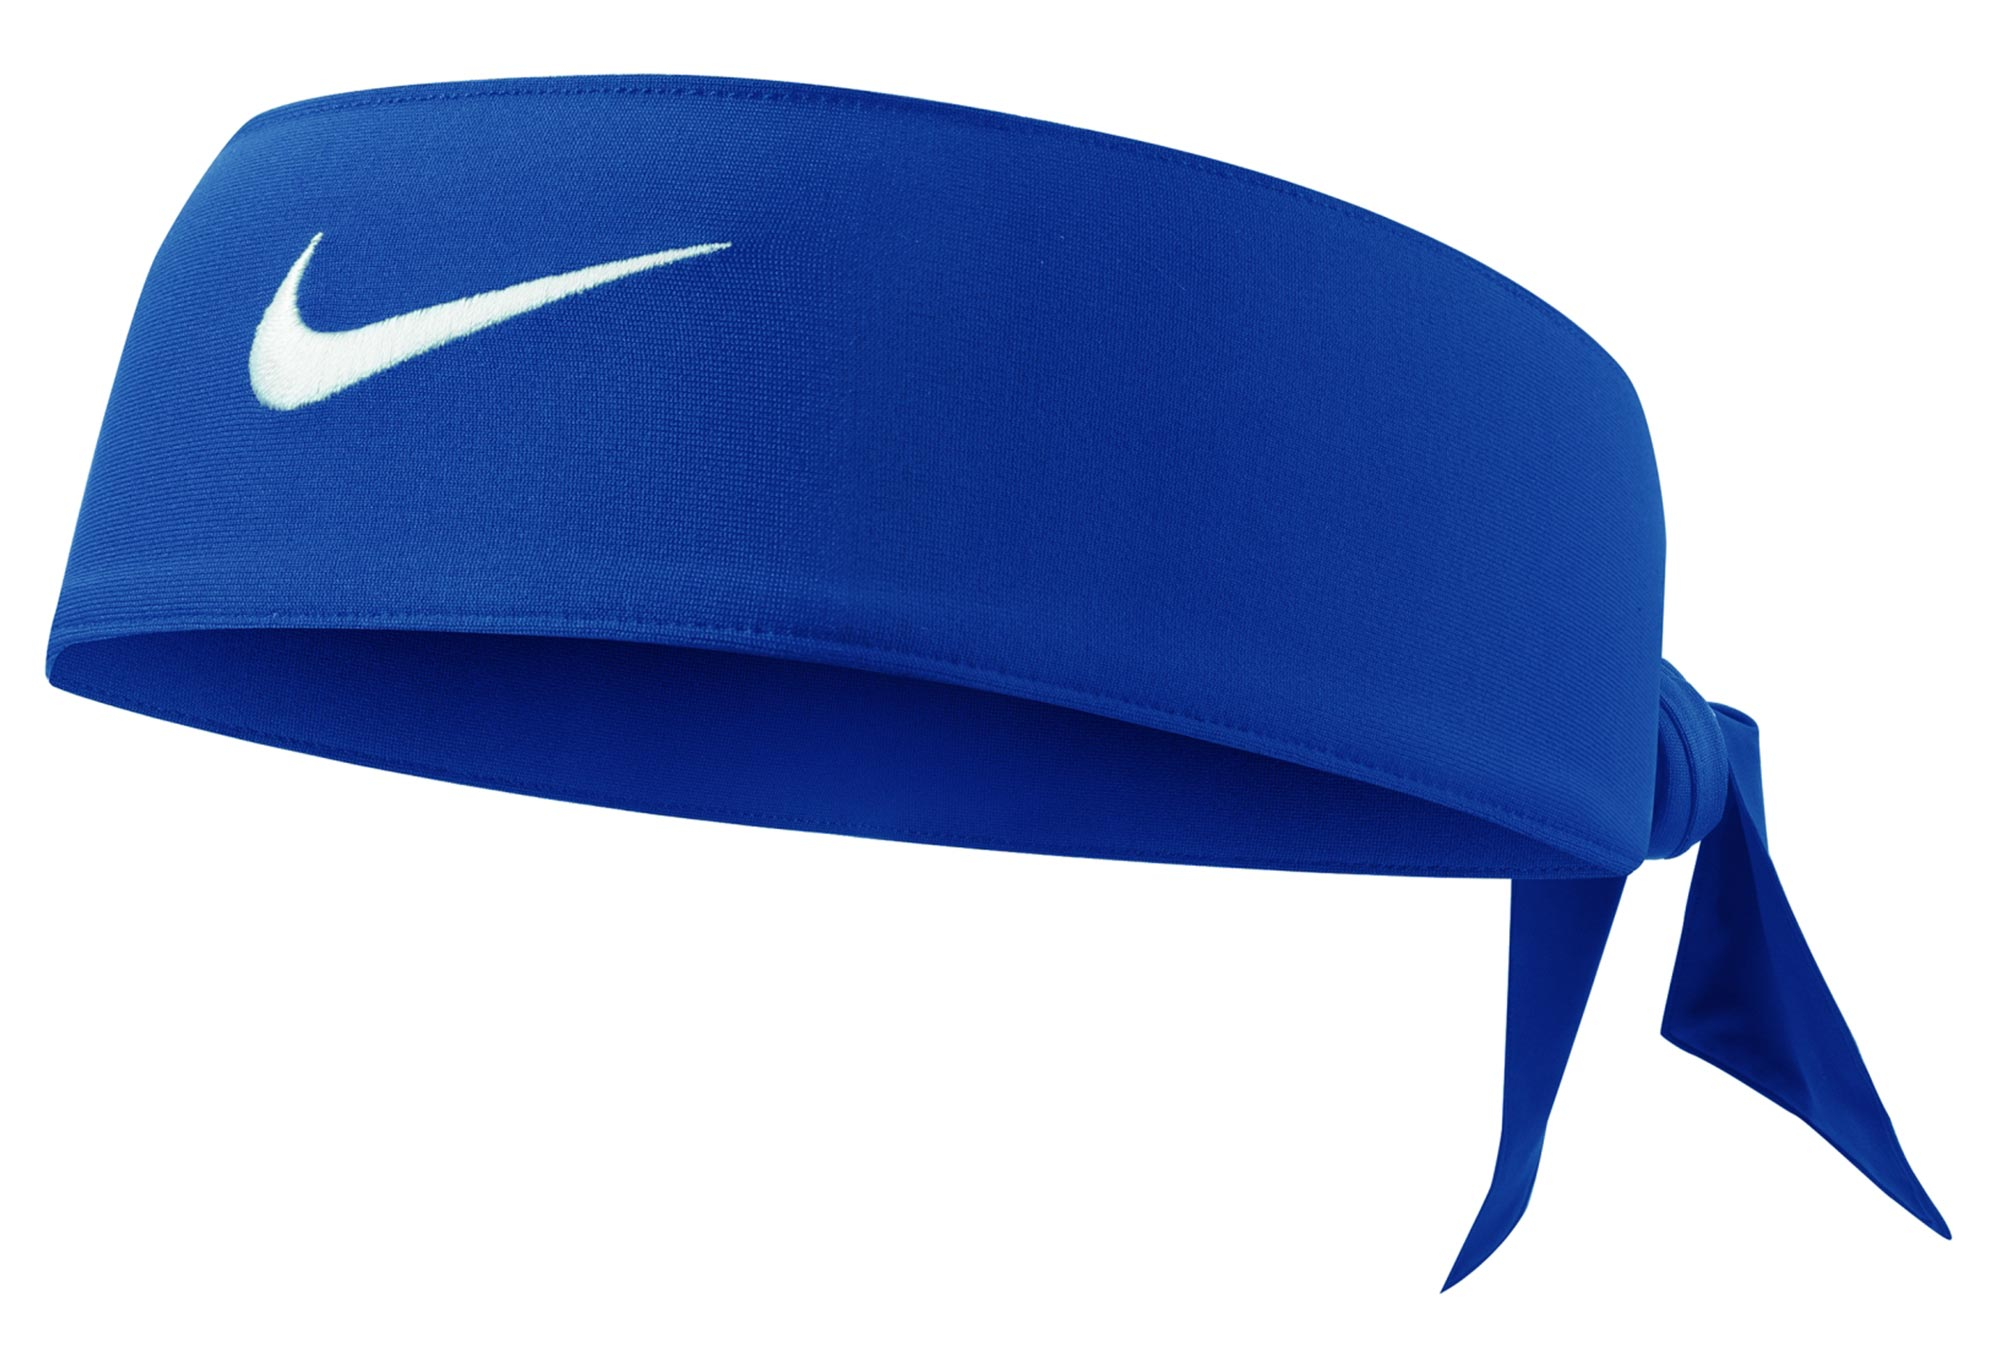 c9871bb485f6f1 Nike Dri-Fit Head Tie 2.0 Stirnband Blau | Alltricks.de